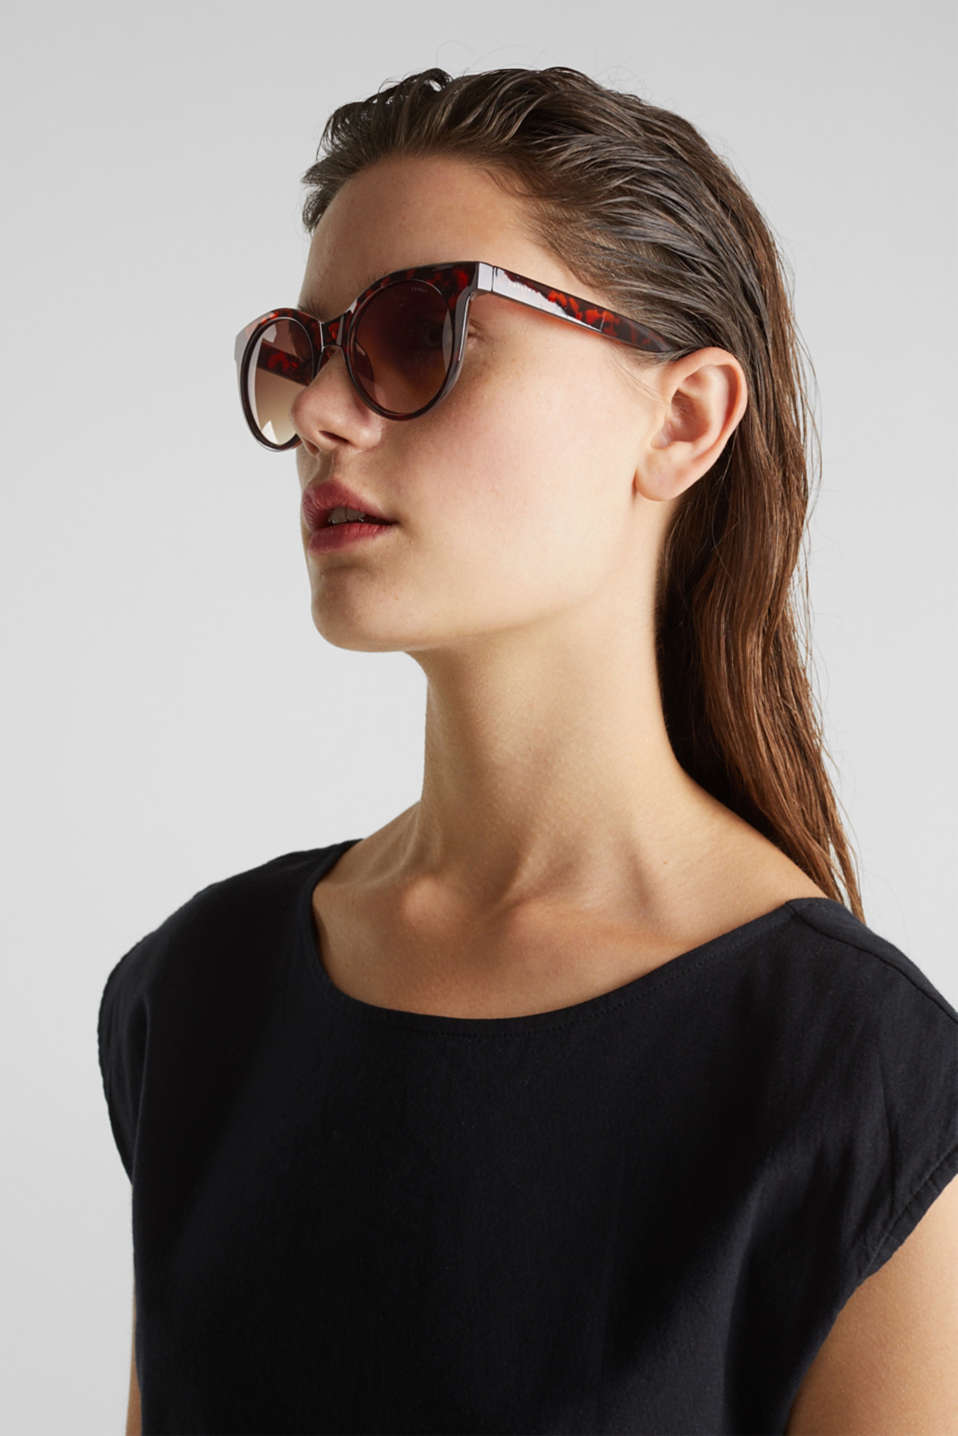 Sunglasses with transparent frame, LCHAVANNA, detail image number 2